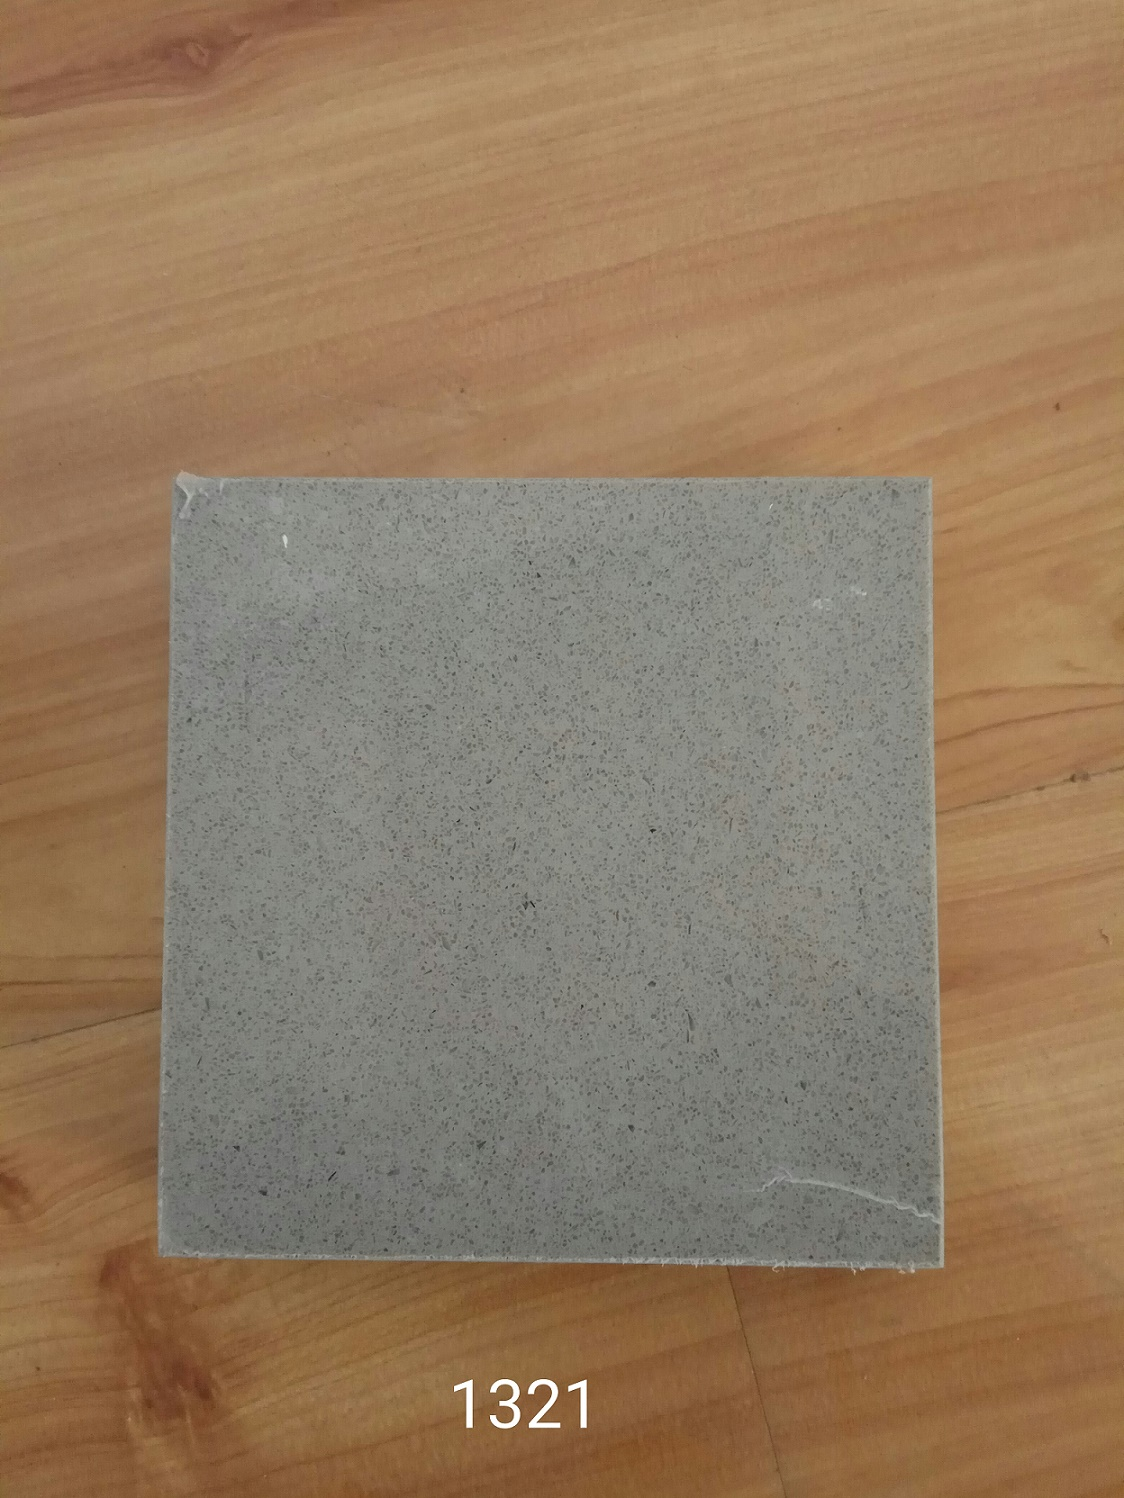 Small grains sky grey color quartz stone